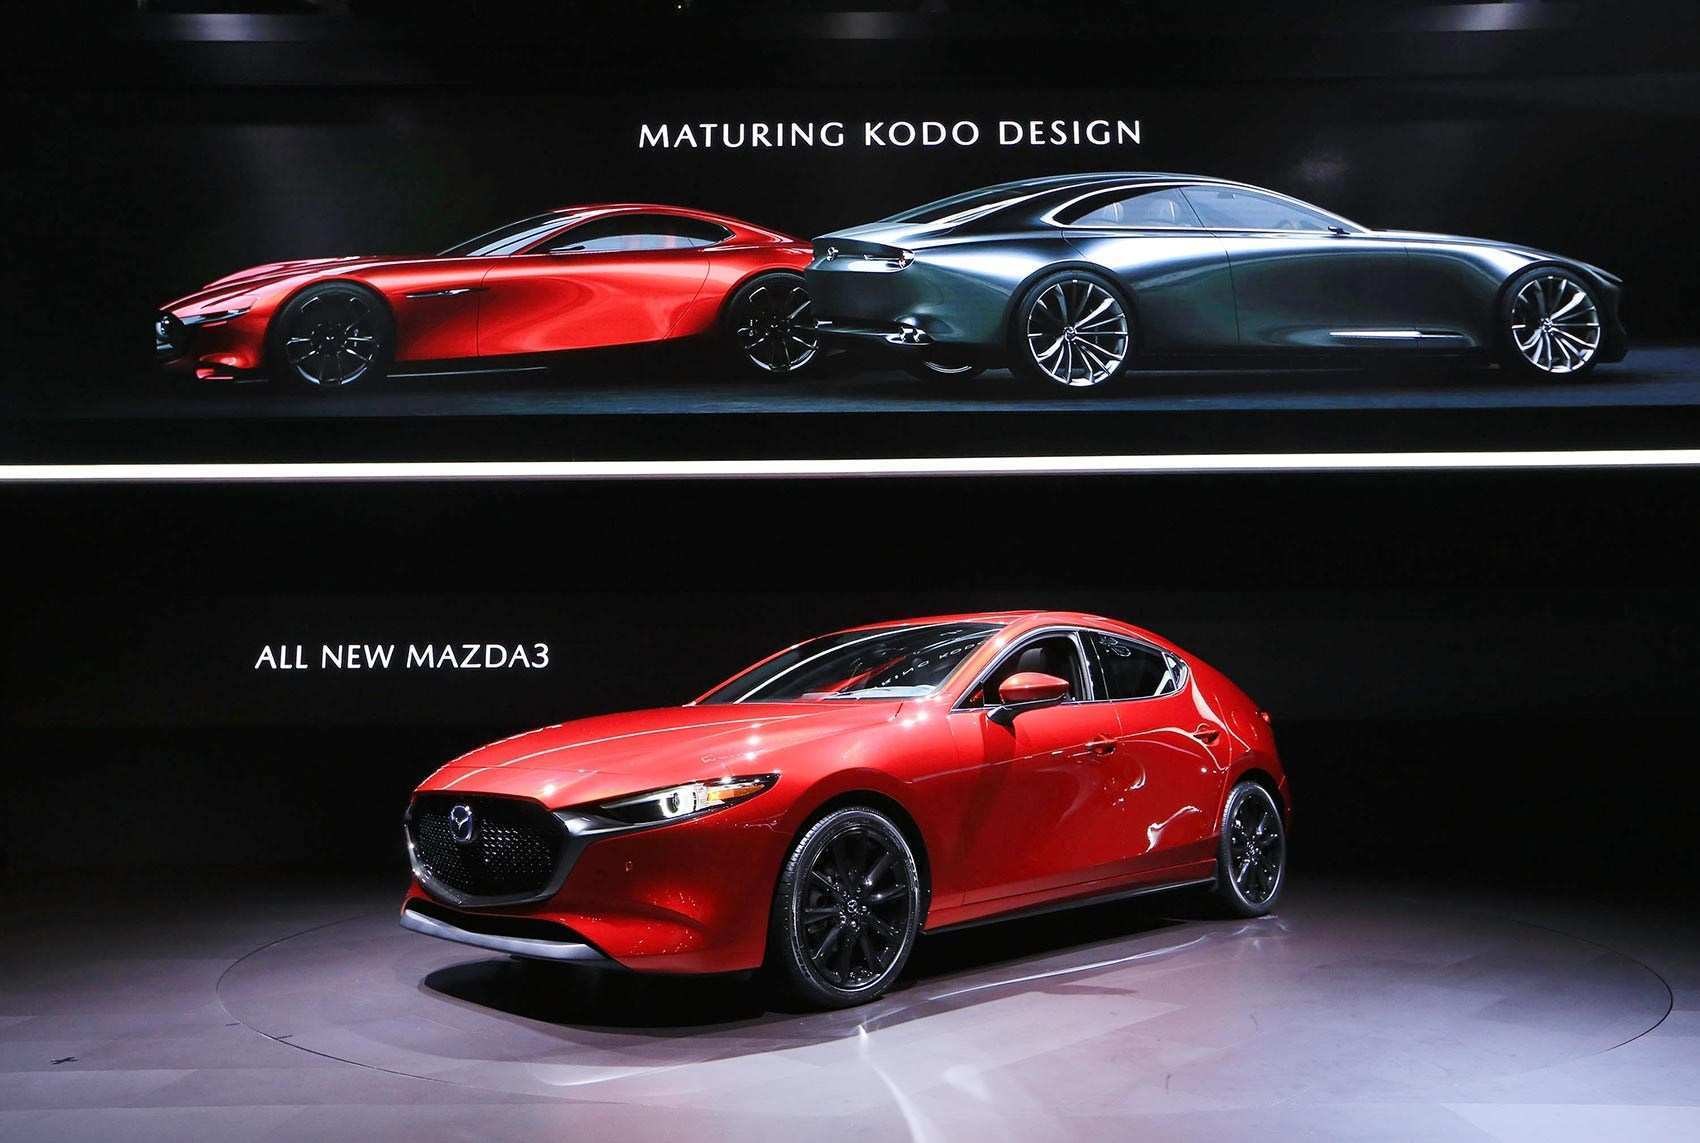 77 Best Review New Mazda 2019 Electric Review And Price Exterior and Interior by New Mazda 2019 Electric Review And Price